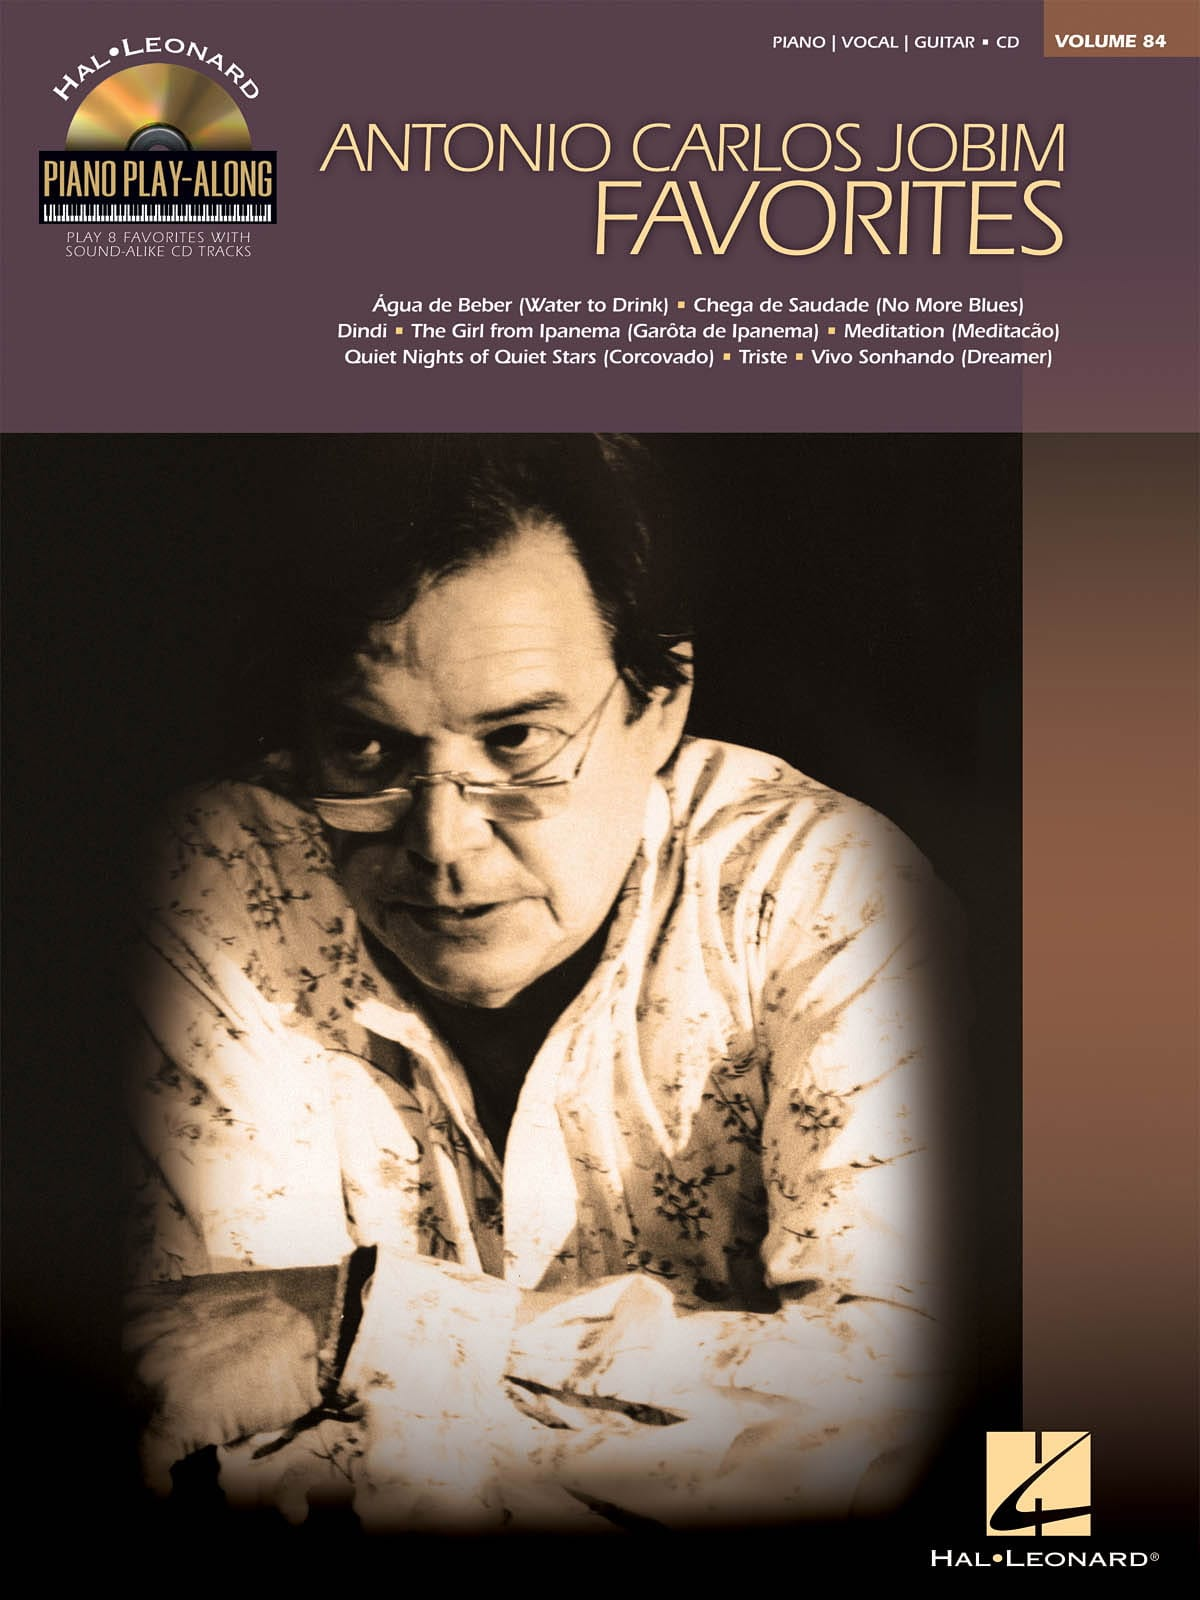 Antonio Carlos Jobim - Play-Along Piano Volume 84 - Jobim Favorites - Partition - di-arezzo.co.uk